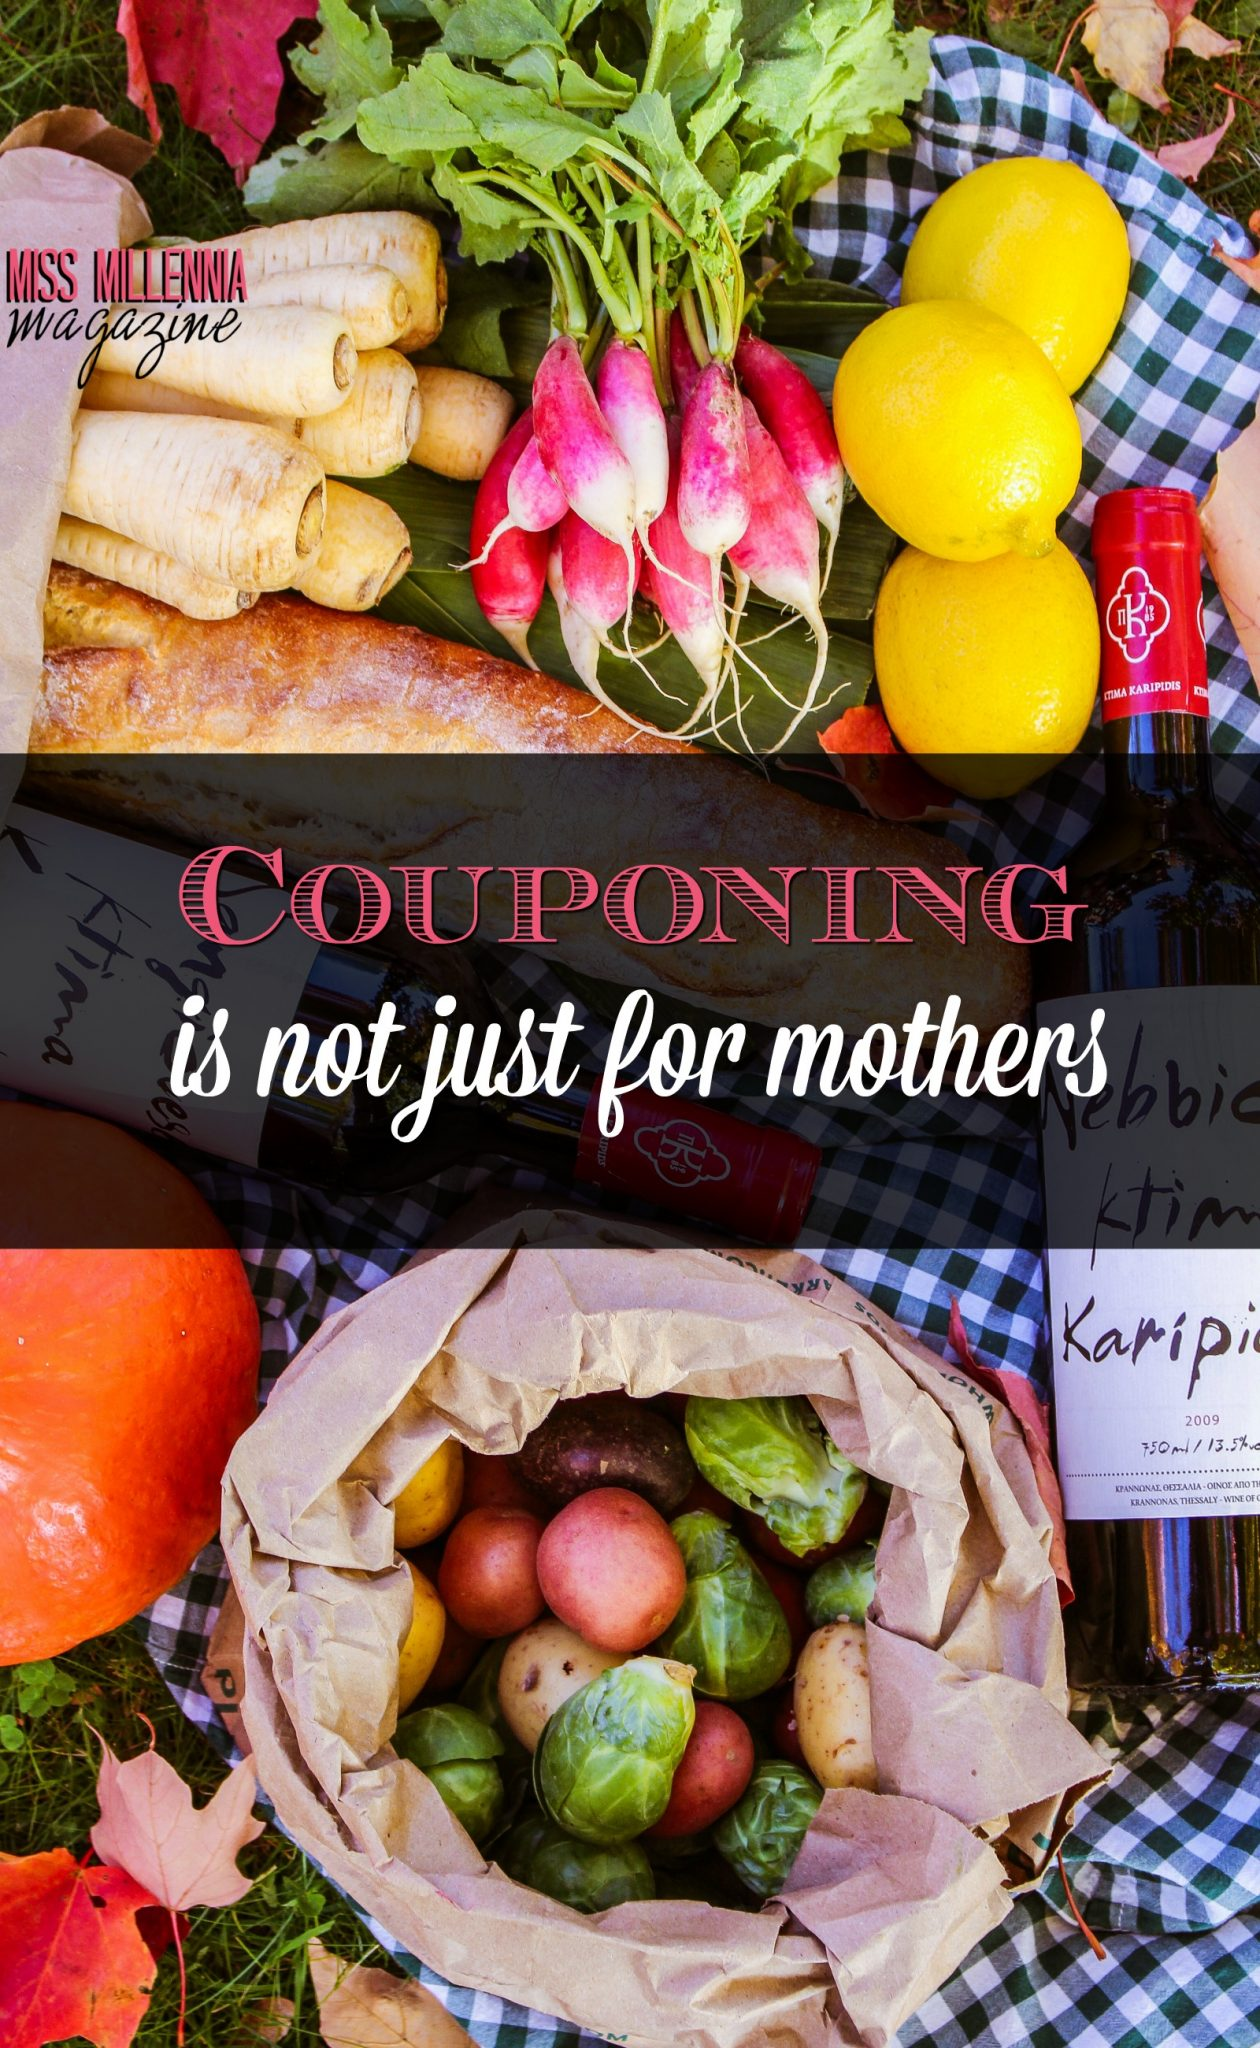 Couponing Is Not Just for Mothers